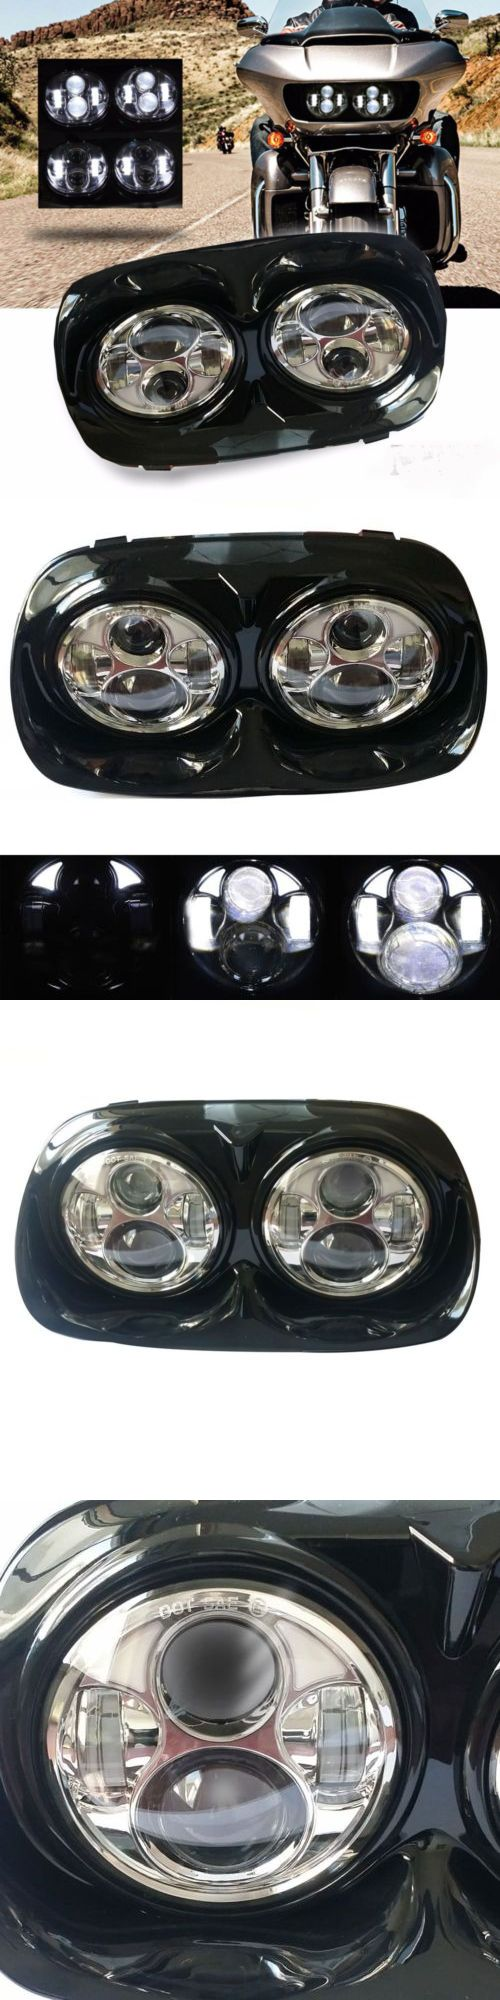 Motorcycle parts led dual headlight chrome for harley road glide motorcycle projector buy it now